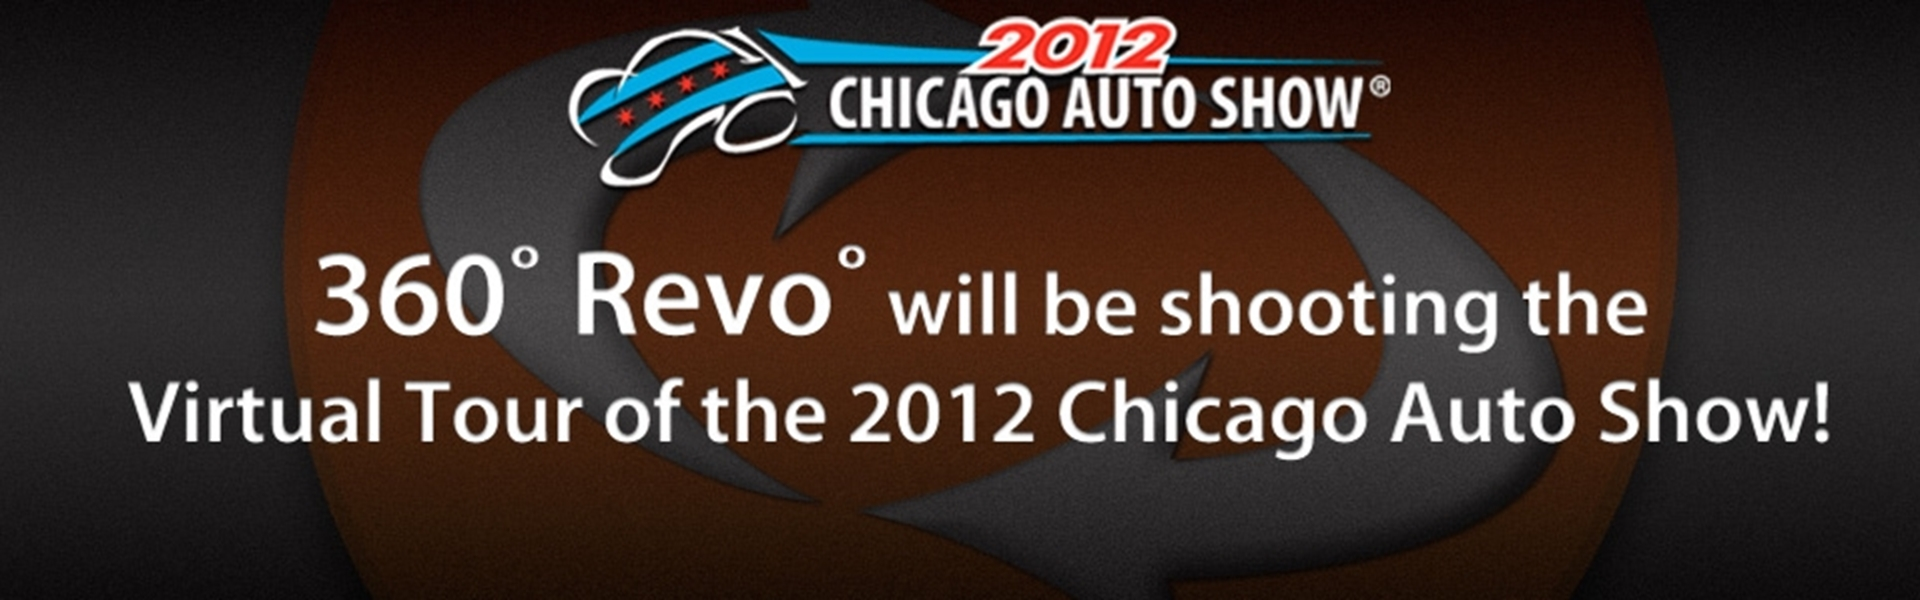 Chicago Auto Show Virtual Tour